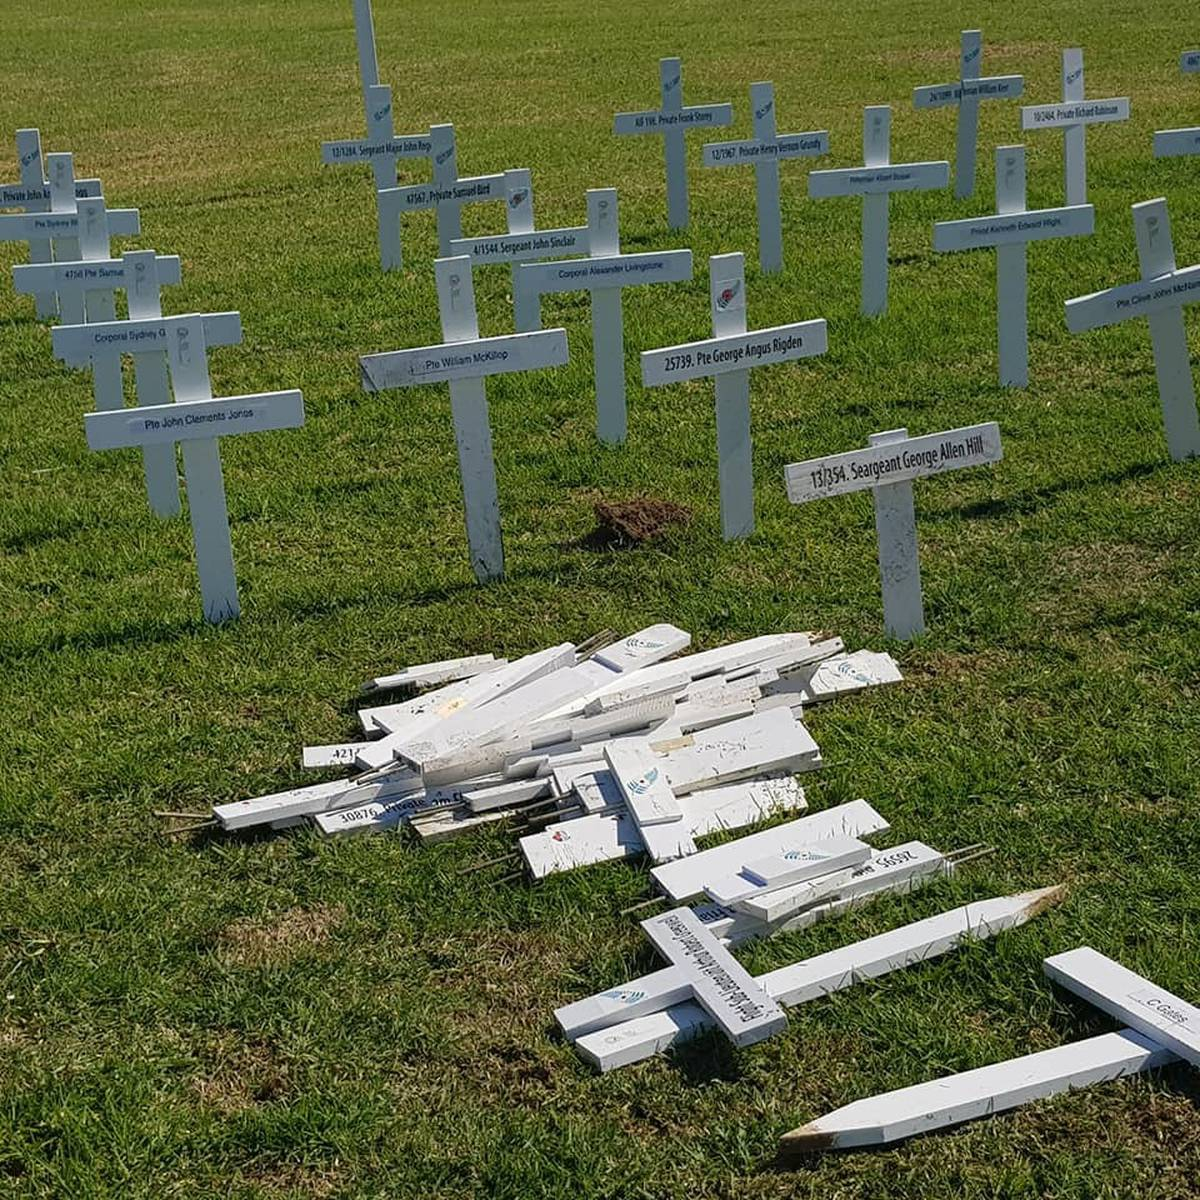 this-is-a-serious-offence-to-our-beautiful-town-vandals-in-huntly-destroy-anzac-day-memorial-crosses